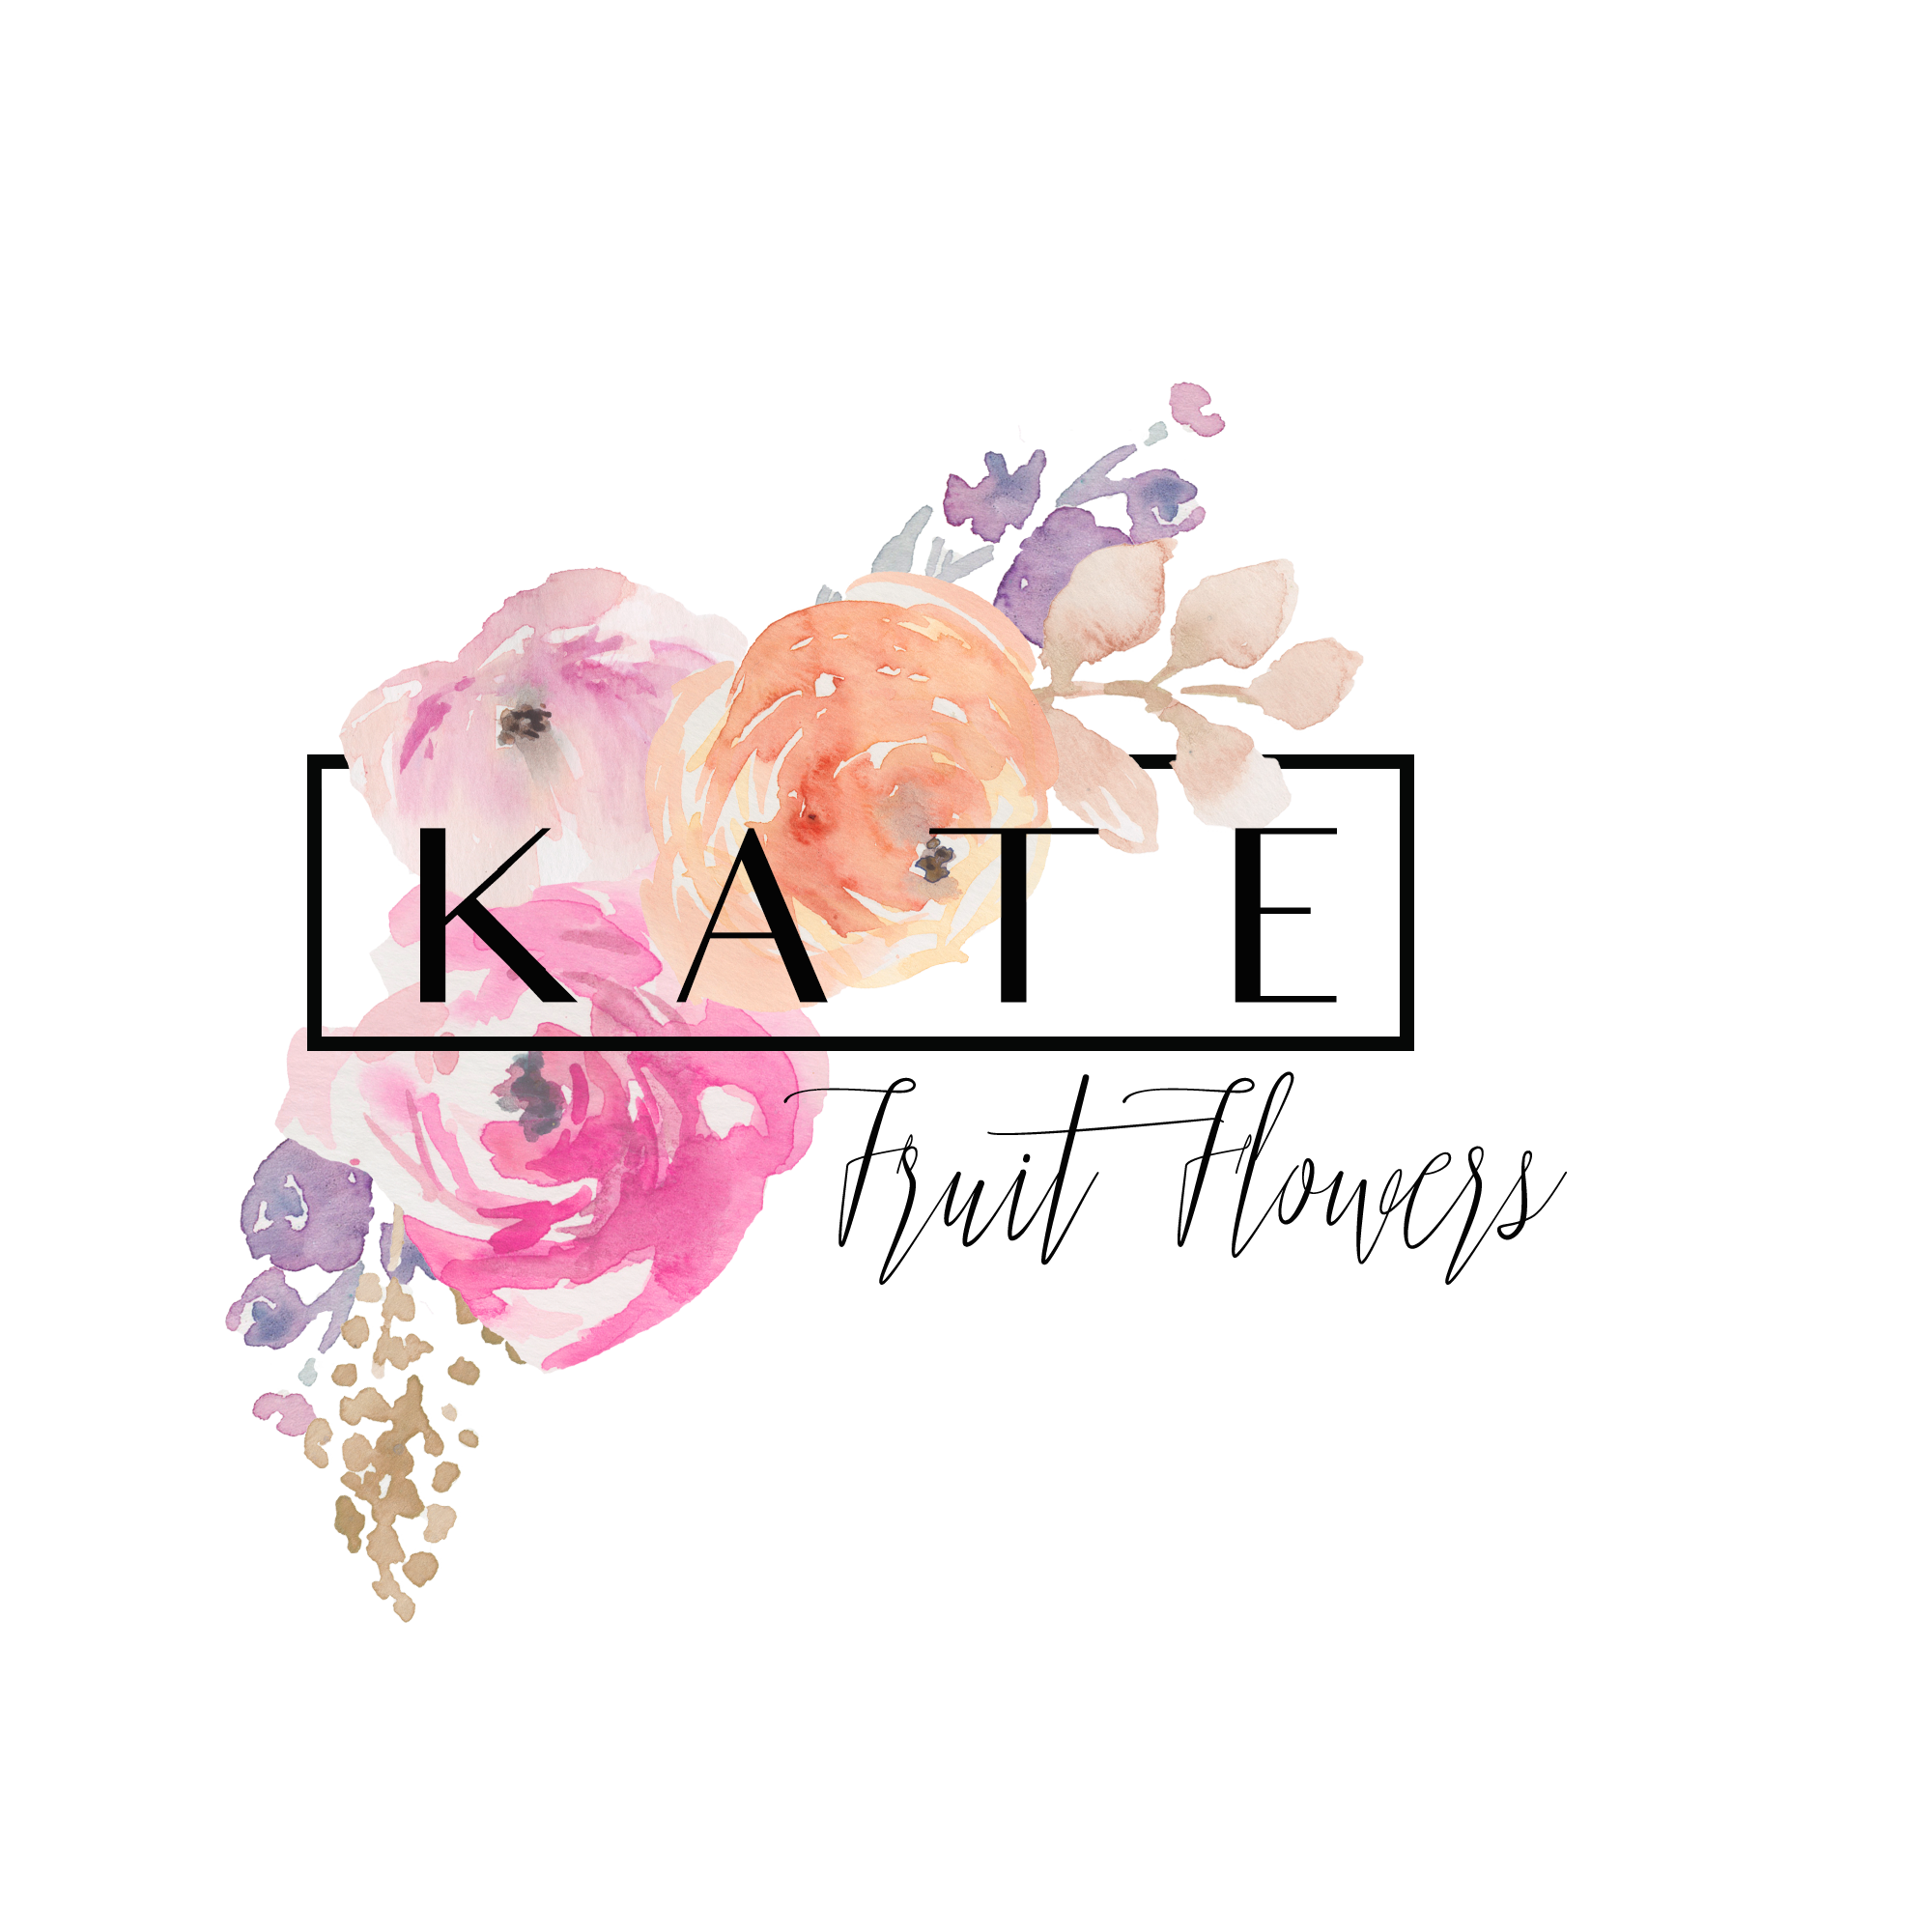 About Kate Flowers – Kate Fruit Flowers